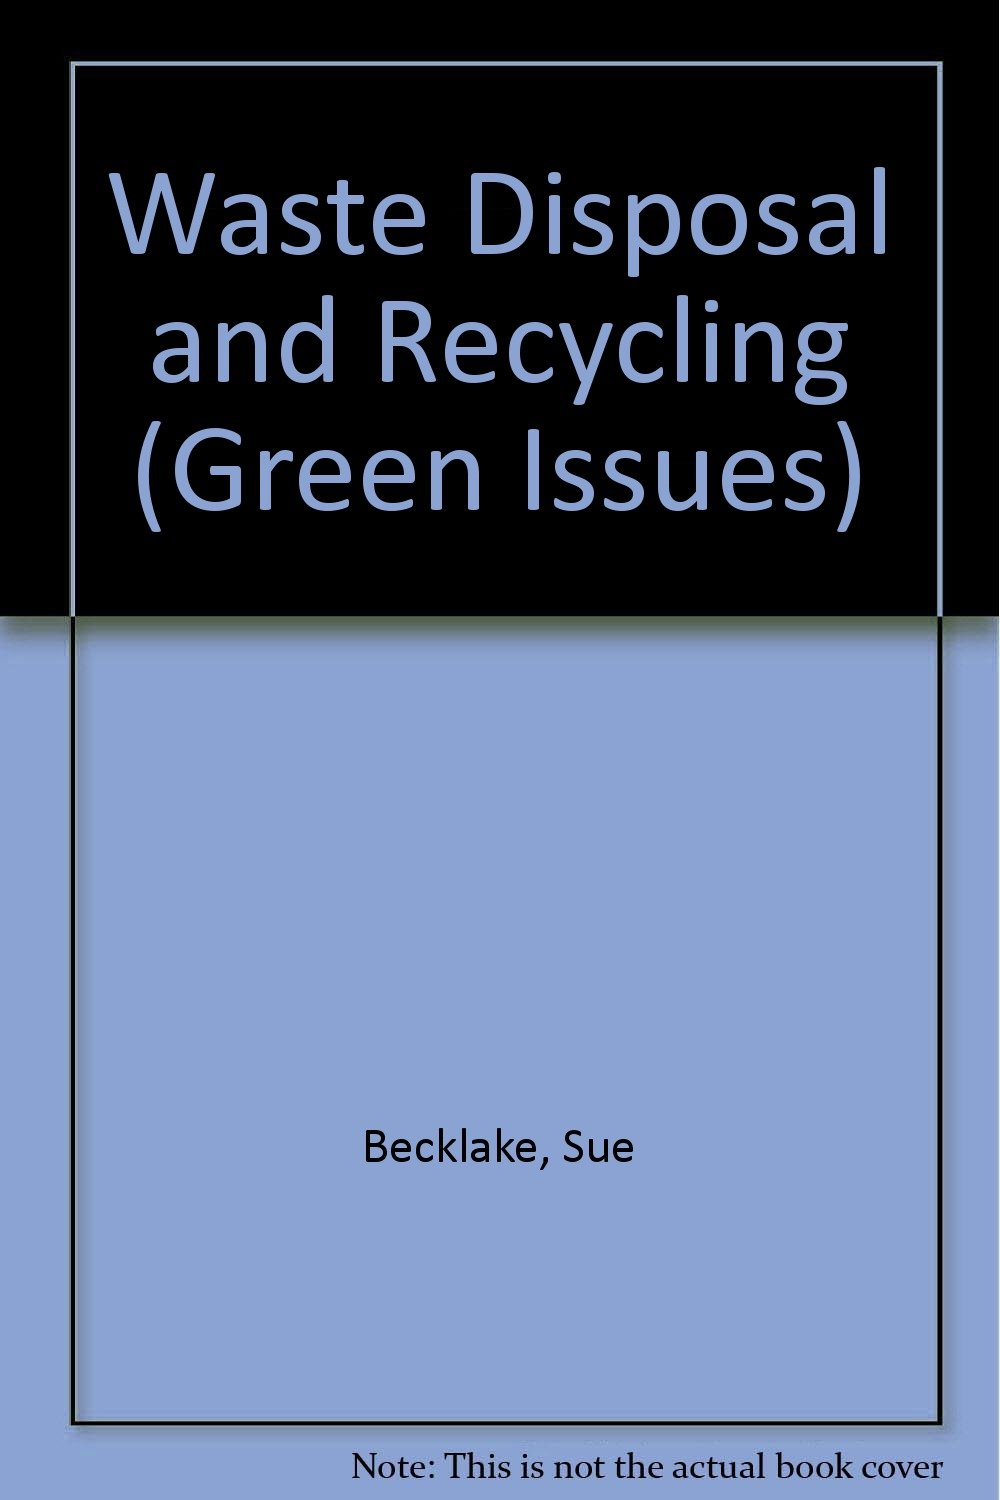 Waste Disposal and Recycling (Green Issues)